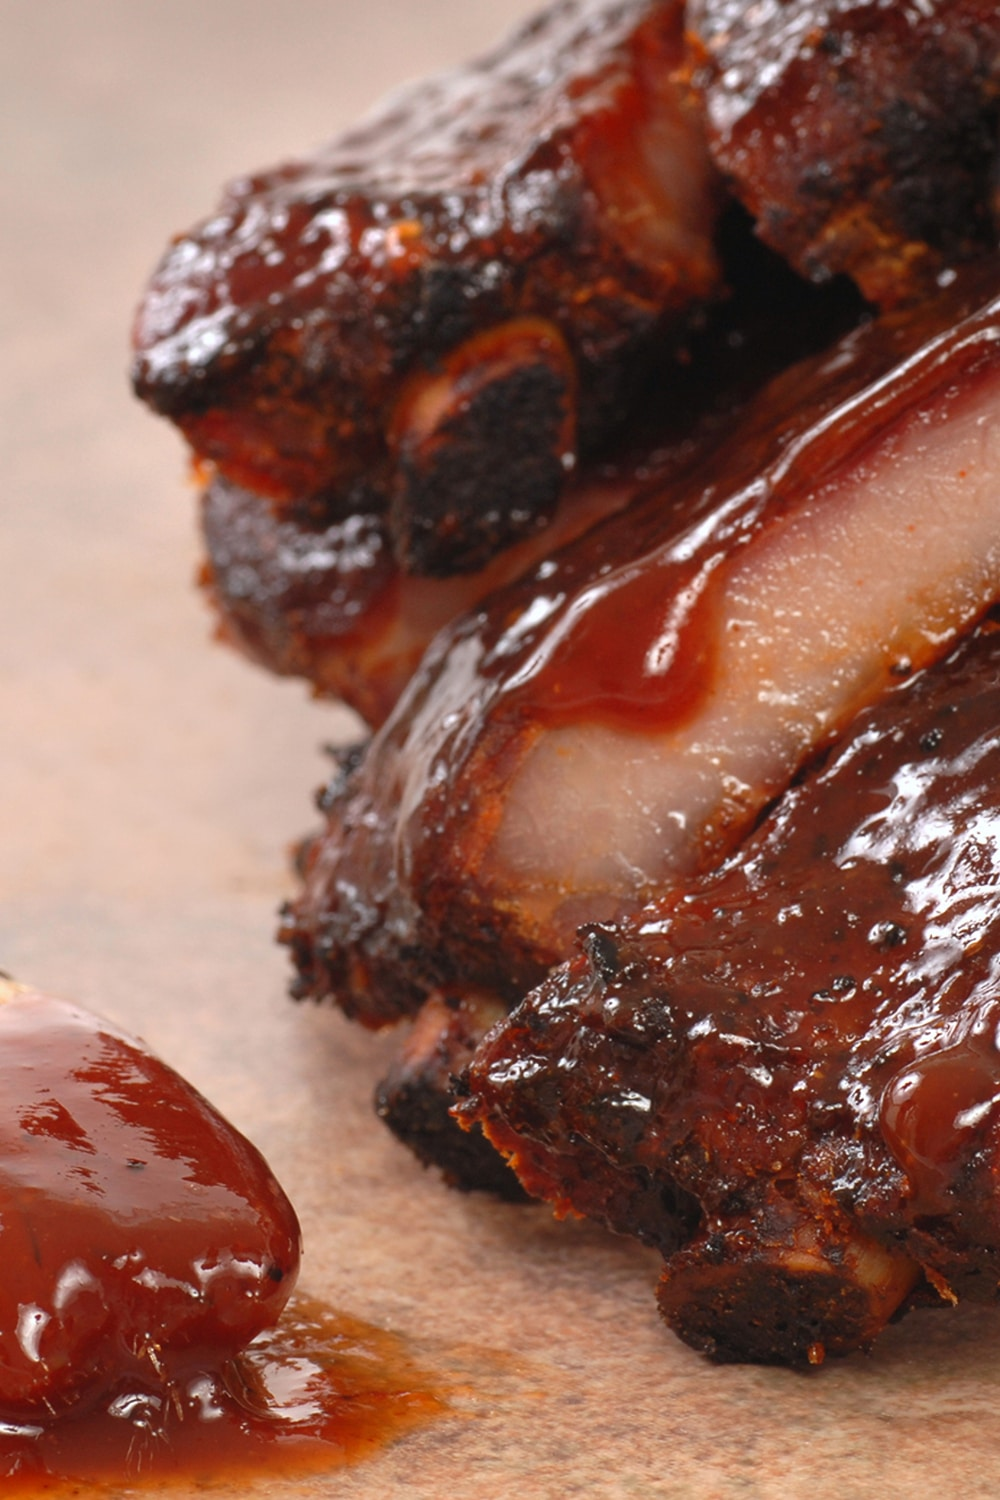 Kansas City Barbecue Sauce dripping over tender bbq ribs